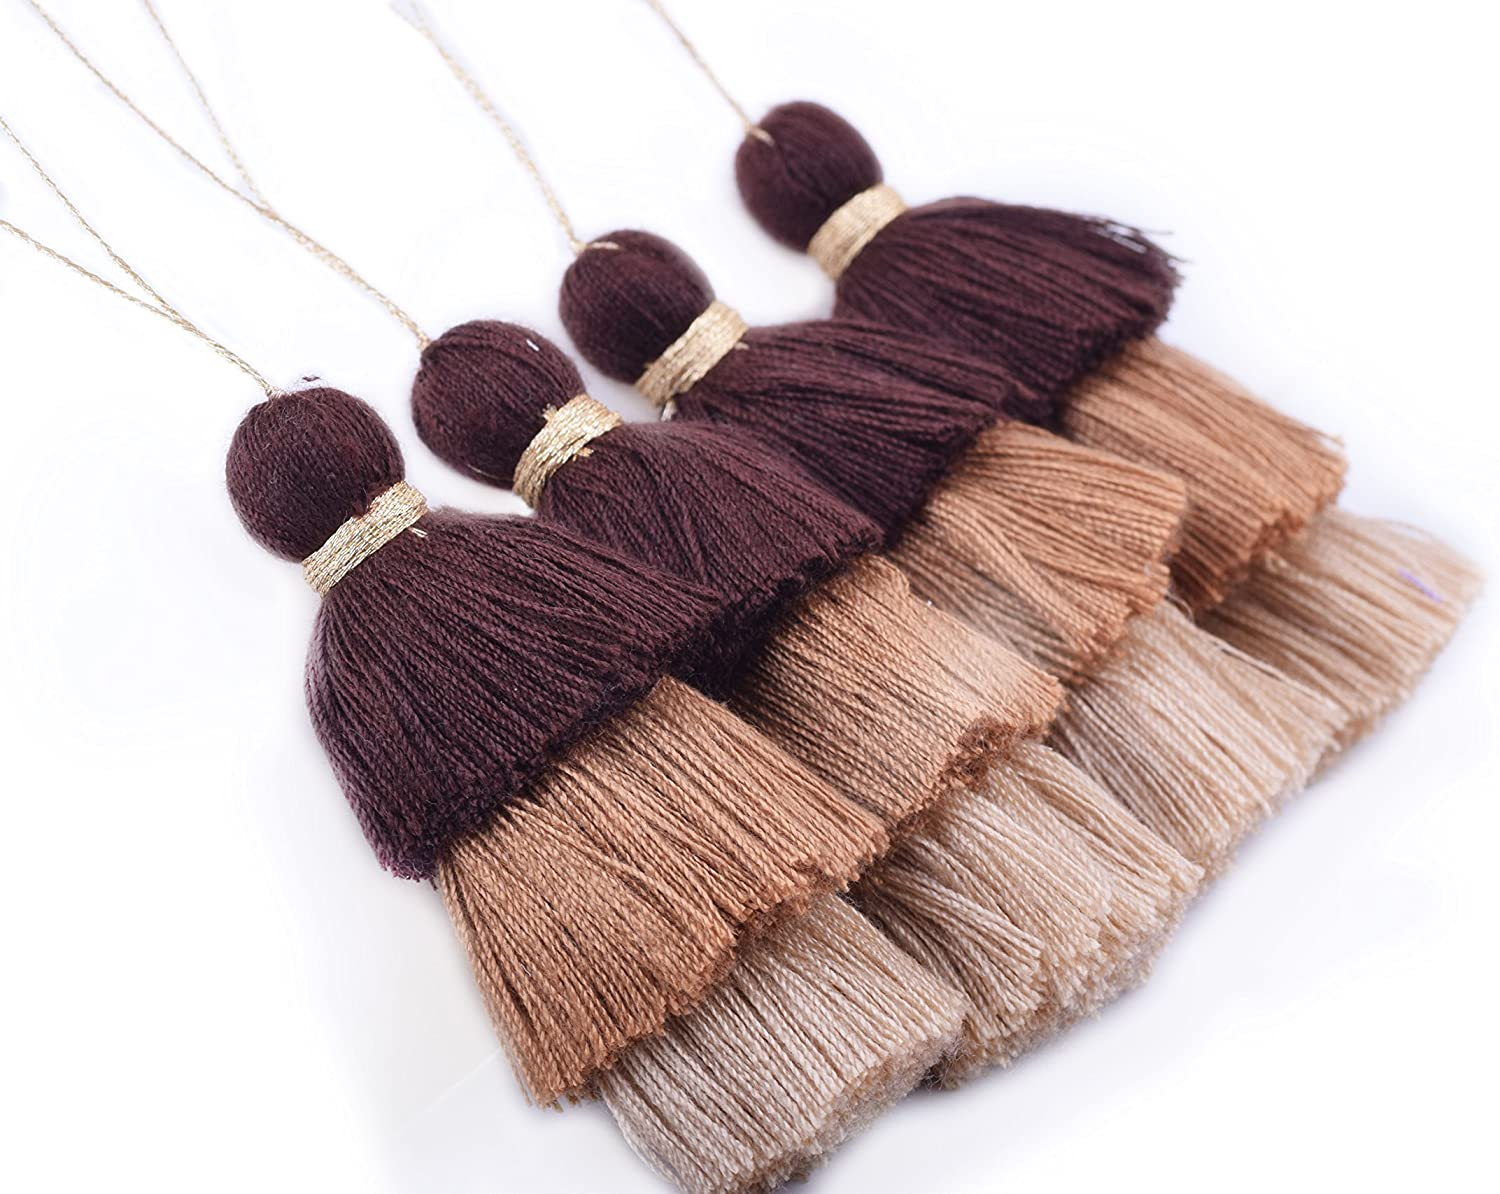 Clothing KONMAY Bulk 20pcs Tri-Layered Tassels with Hanging Loop for Jewelry Making